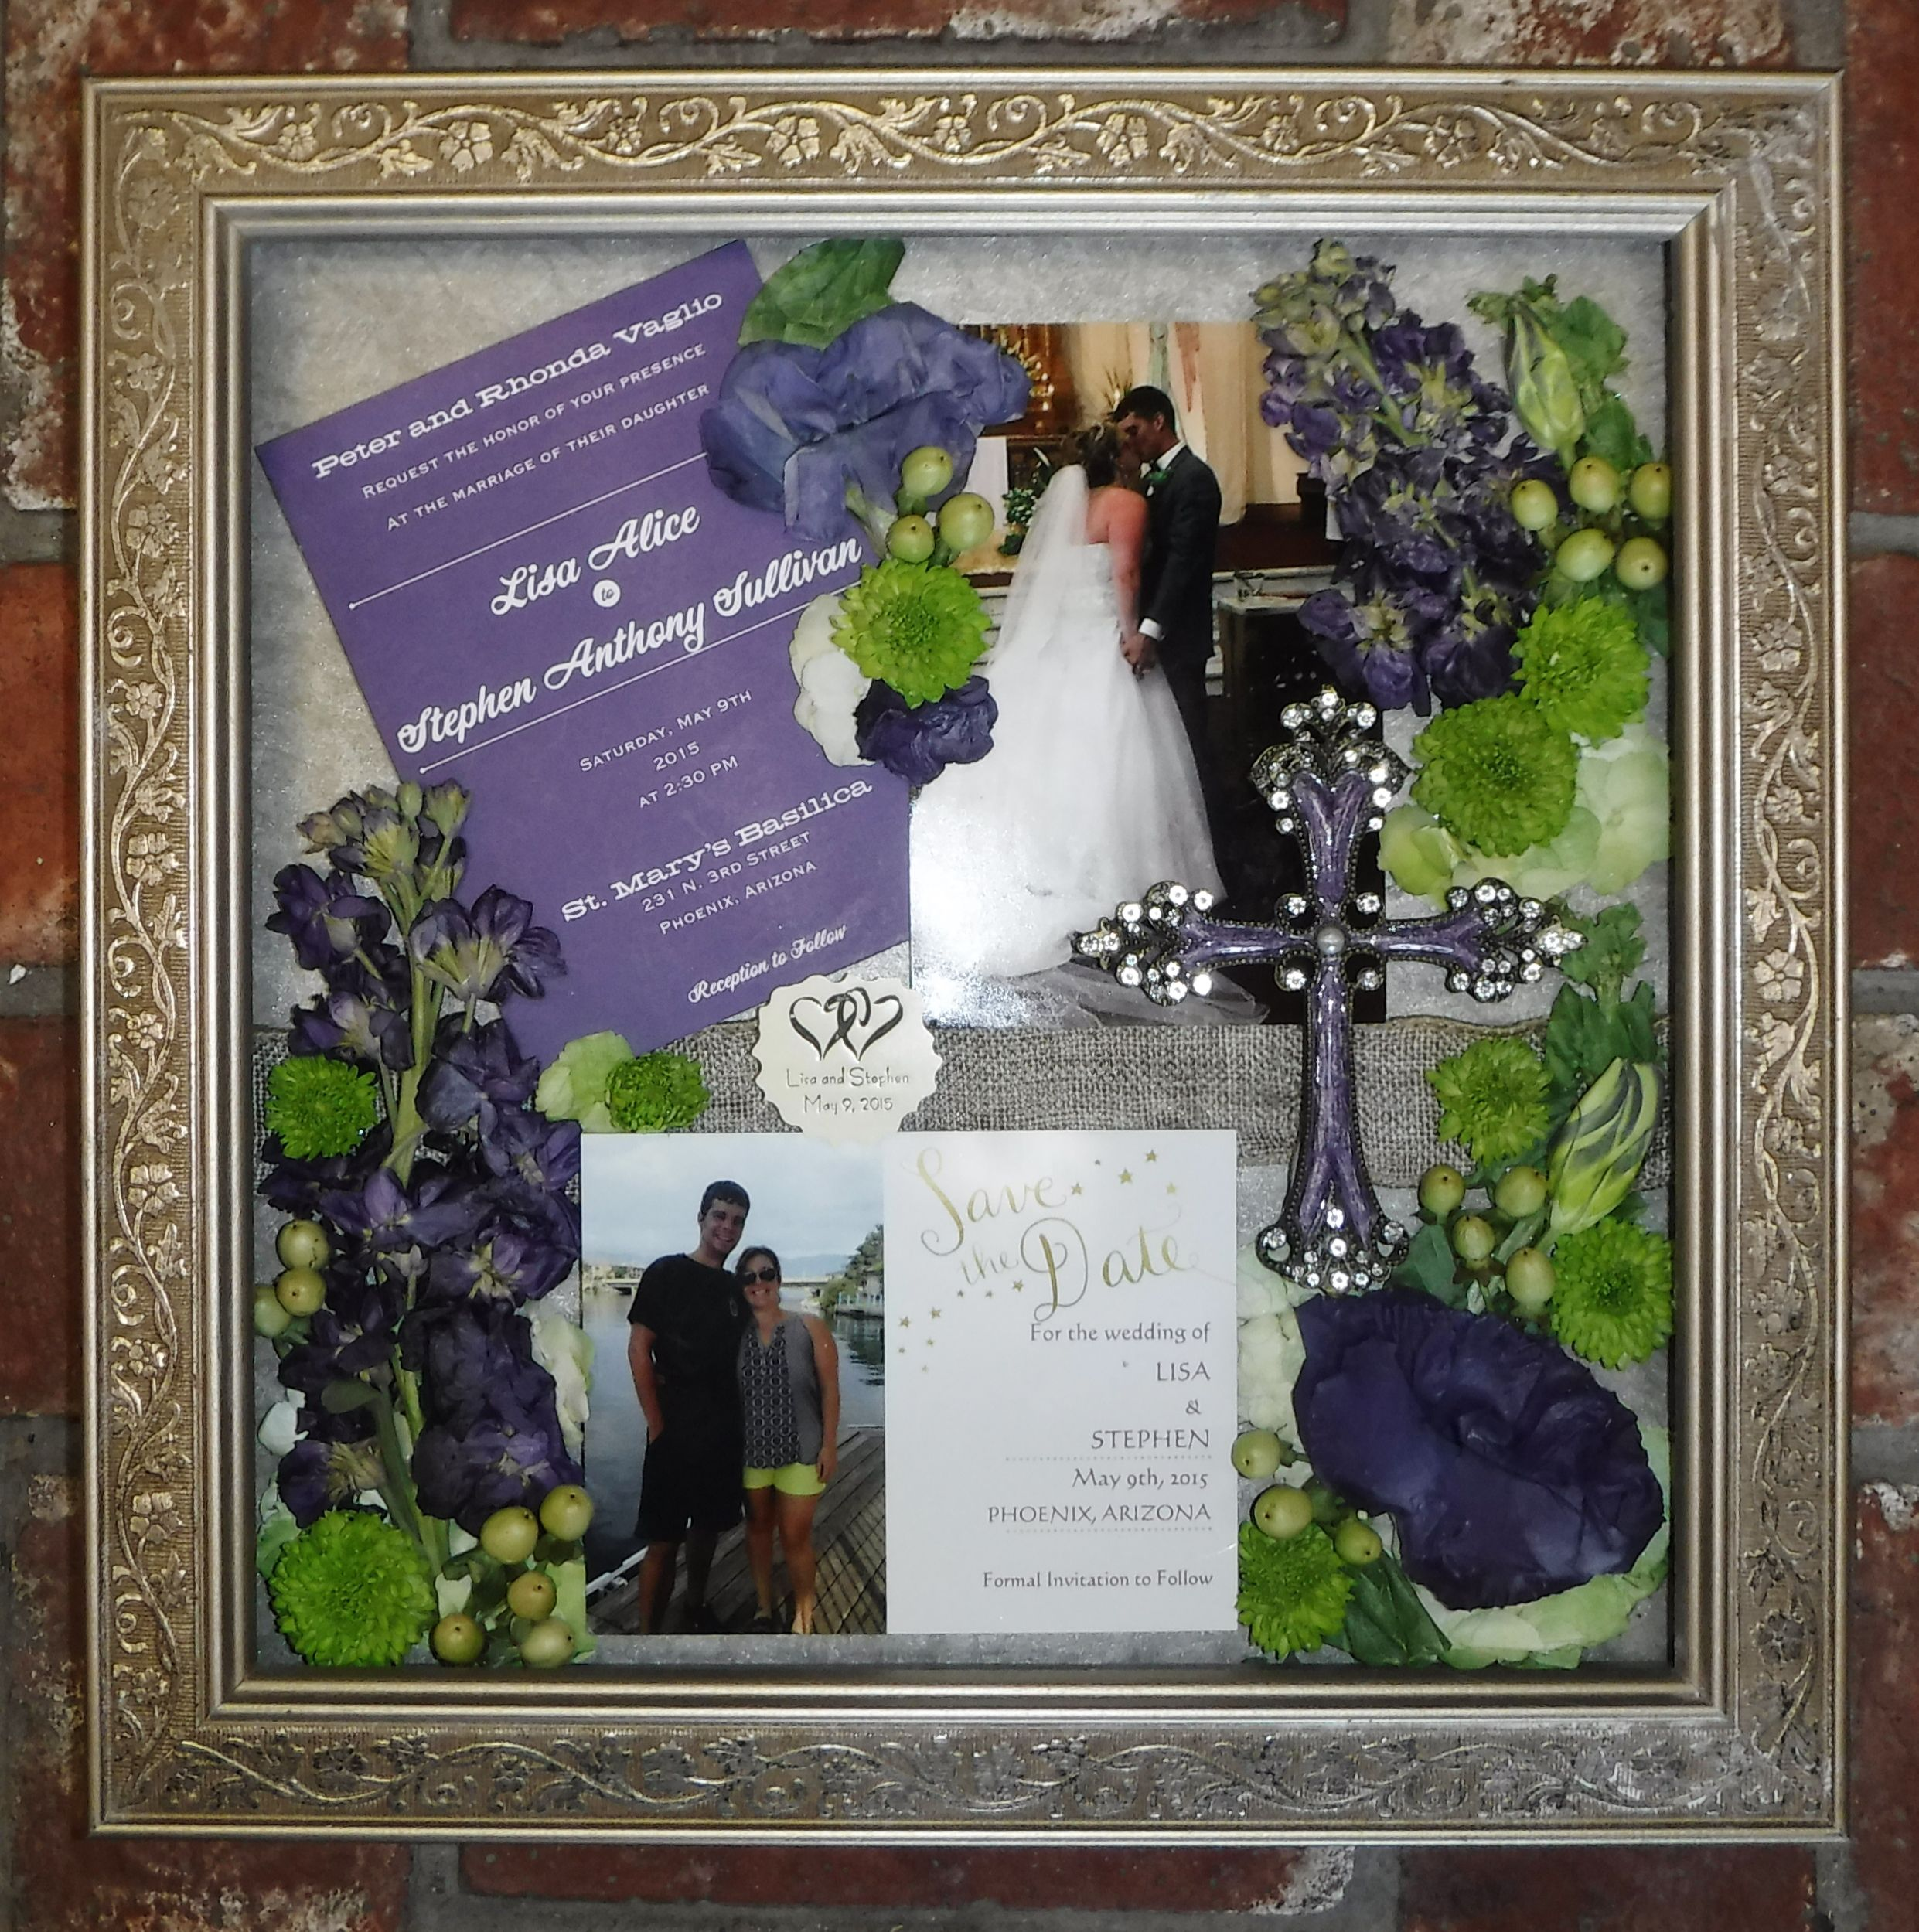 Pressed Wedding Flowers: Pressed Wedding Flowers Framed By Floral Keepsakes Www